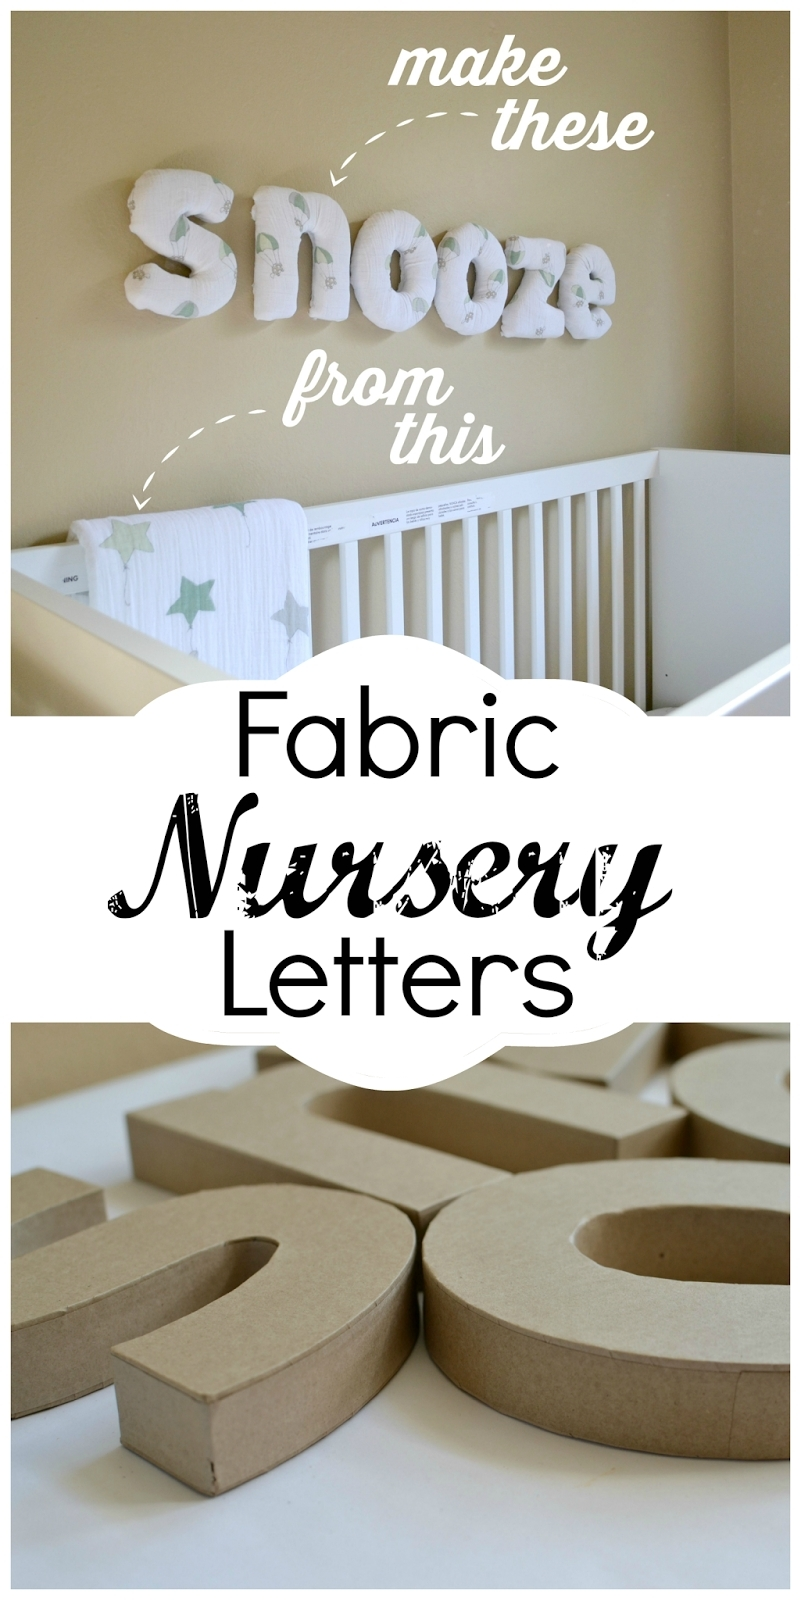 How To Make Easy Diy Fabric Letters For Your Nursery | Fabric In Most Up To Date Fabric Wall Art Letters (View 8 of 15)